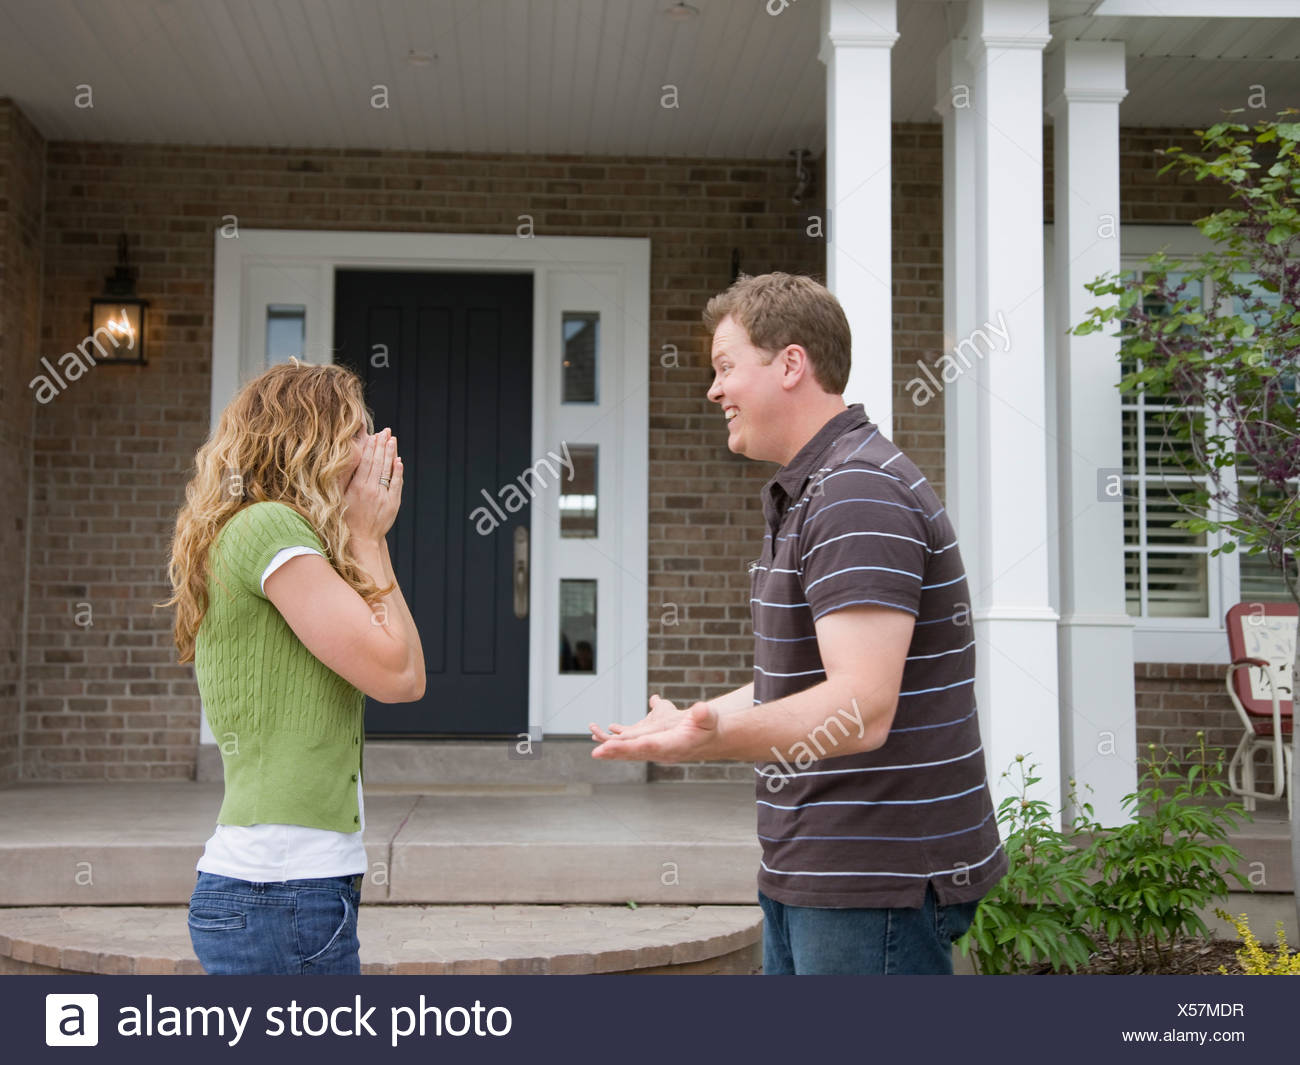 man surprising wife in front of house - Stock Image